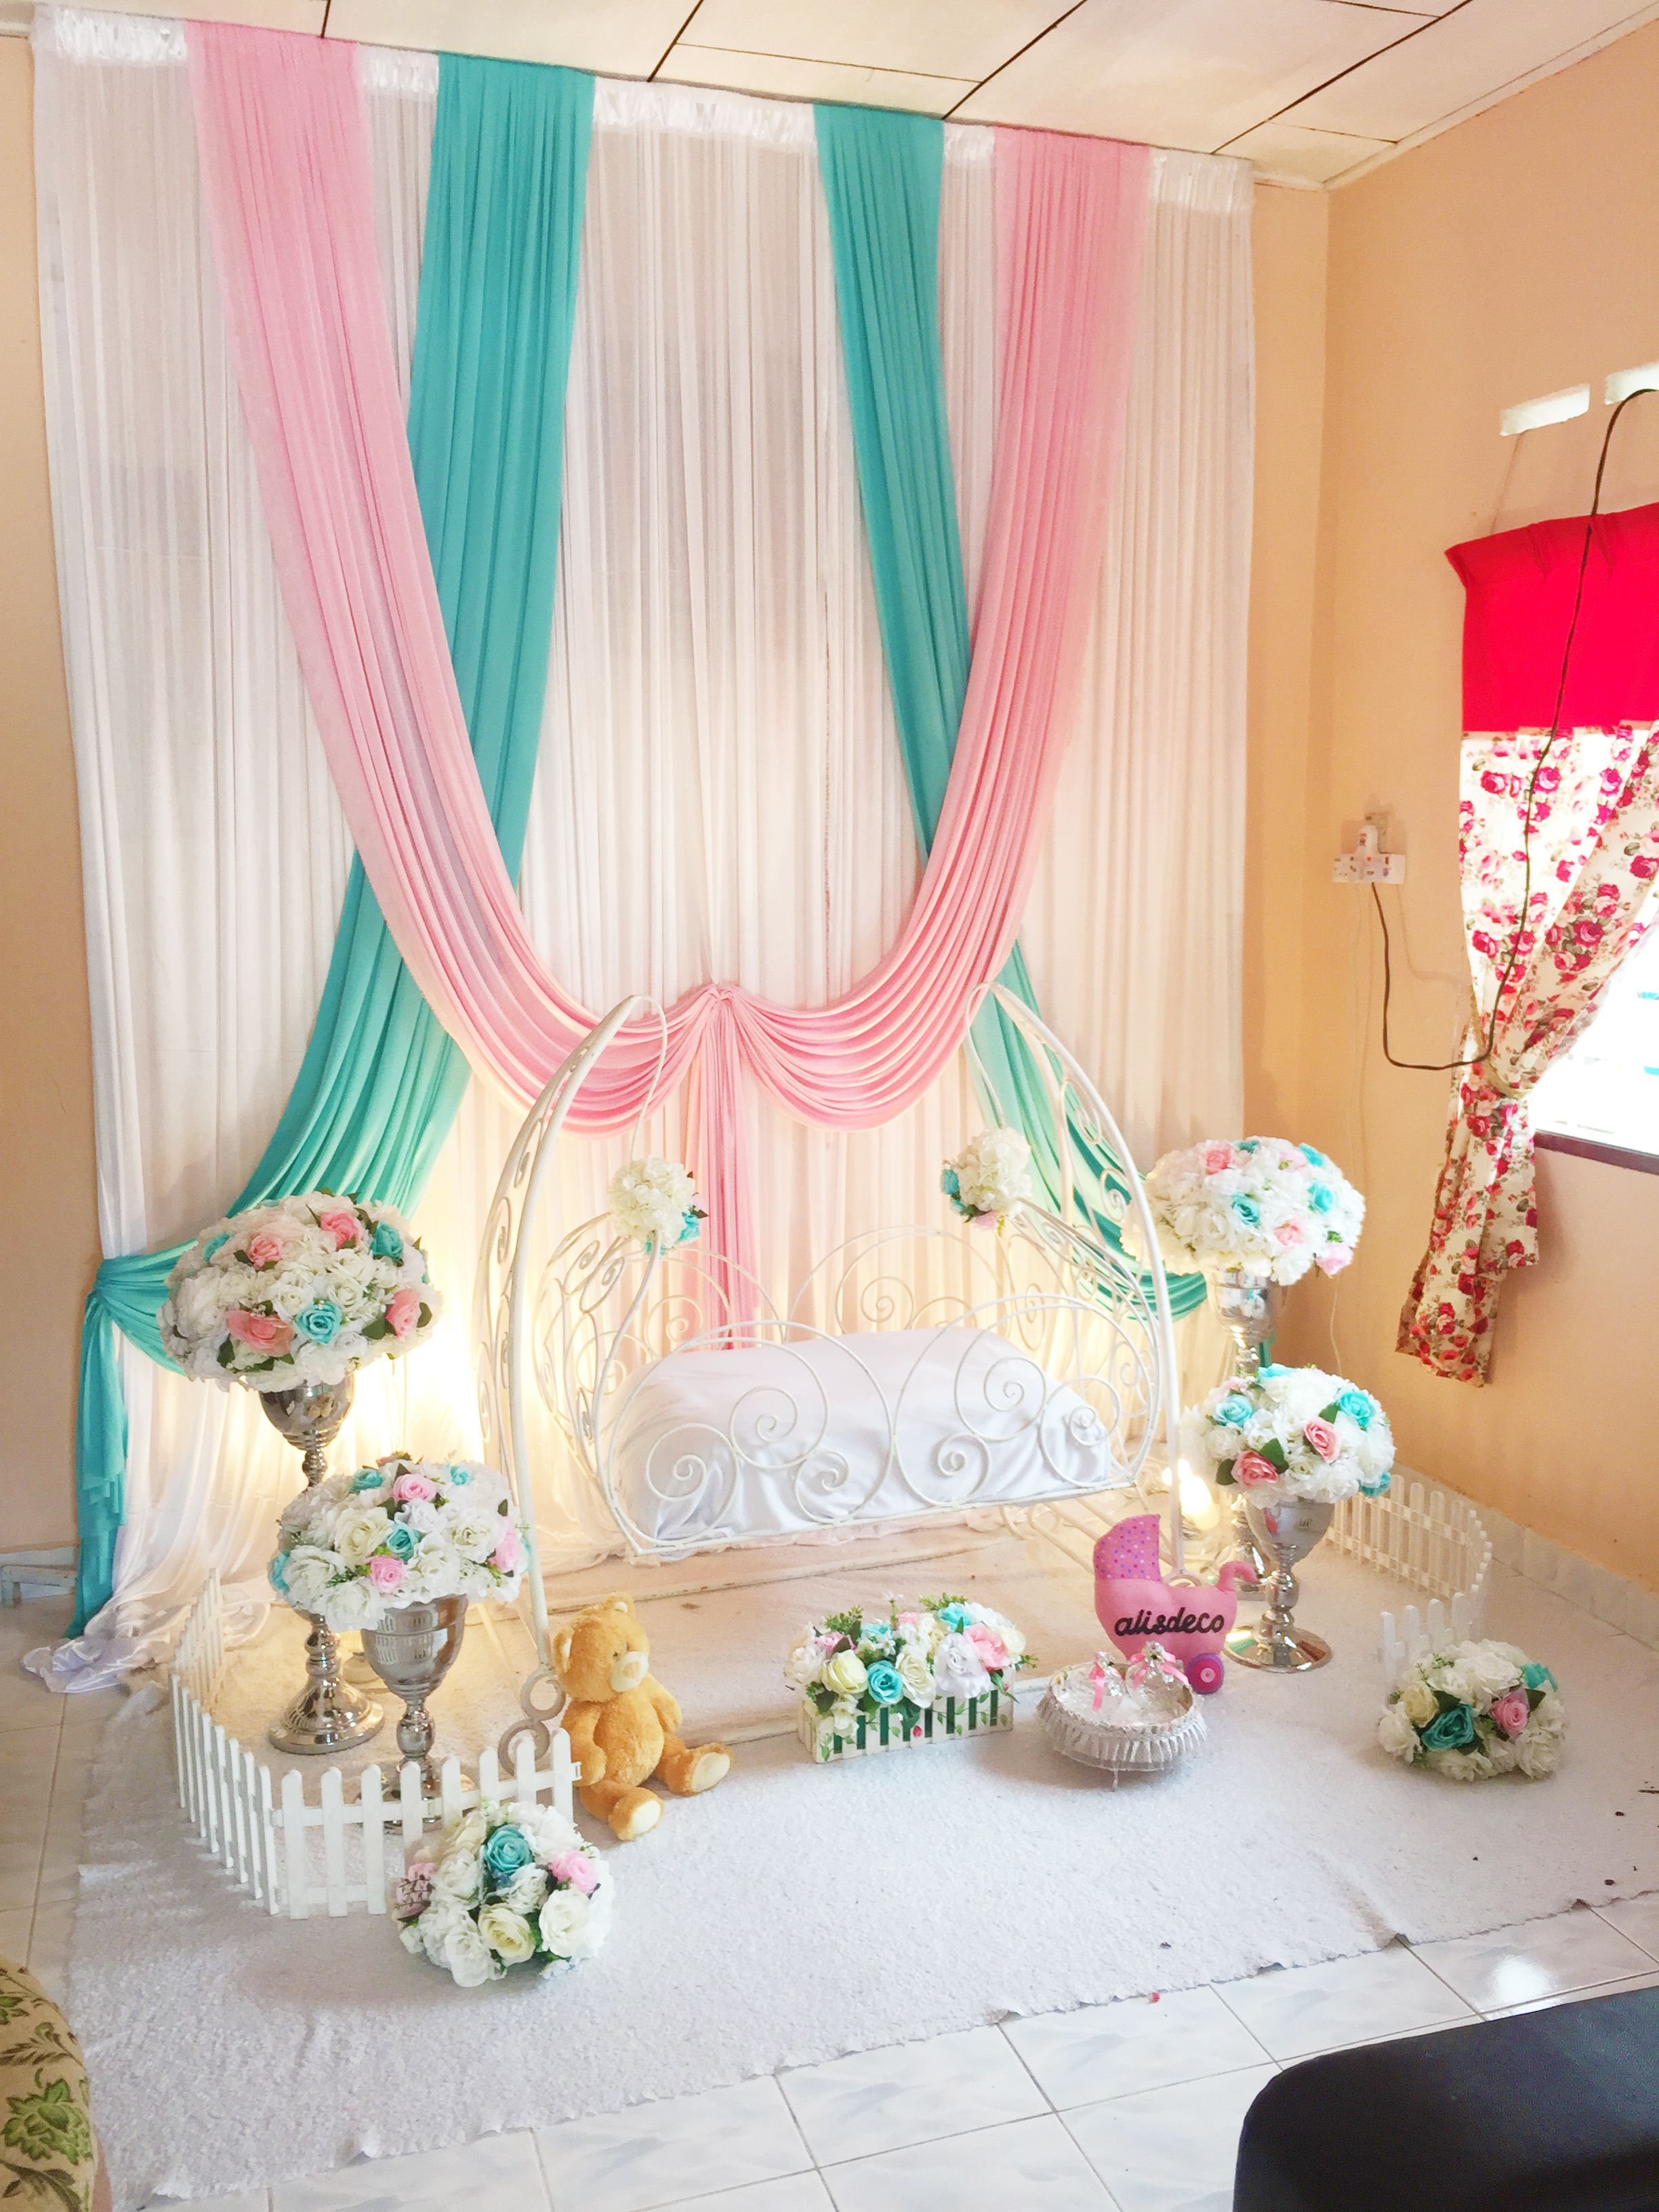 Decoration baby cradle for naming ceremony pelamin buaian for Baby cradle function decoration